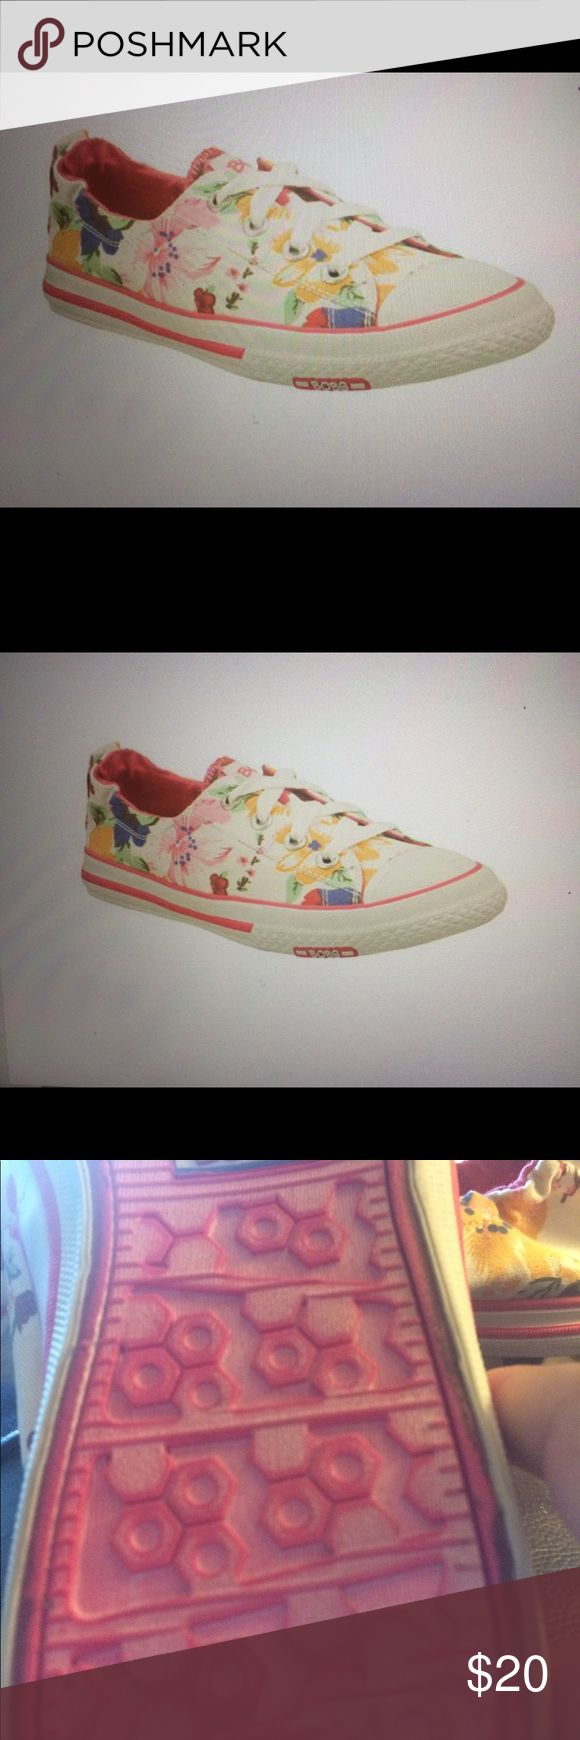 Bob's shoes by Skechers Adorable pink floral design on white background. Elastic in back. Worn once, no wear or flaws. SPECIAL! Buy any item priced at $20 or more get an item priced at $19 or less FREE! bob's by skechers Shoes Athletic Shoes